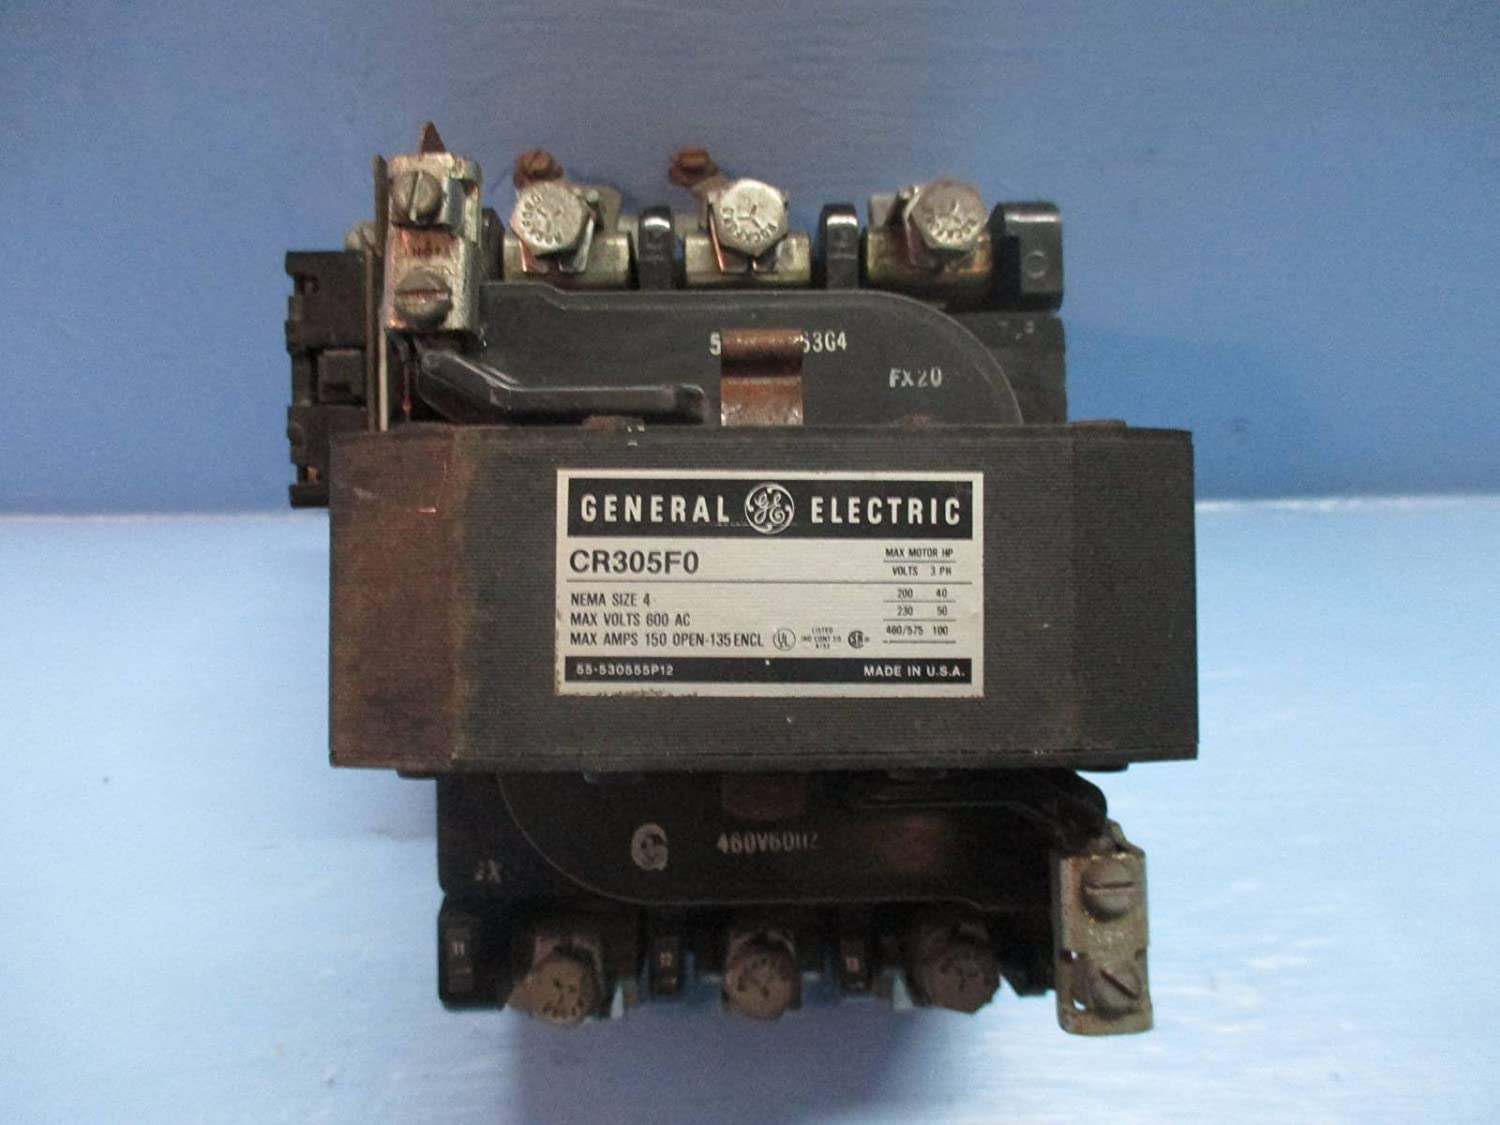 General Electric Cr305fo Size 4 Contactor 150 Amp 600 Vac 460v Coil Ge Wiring 3 Phase 100hp Sz4 Industrial Scientific